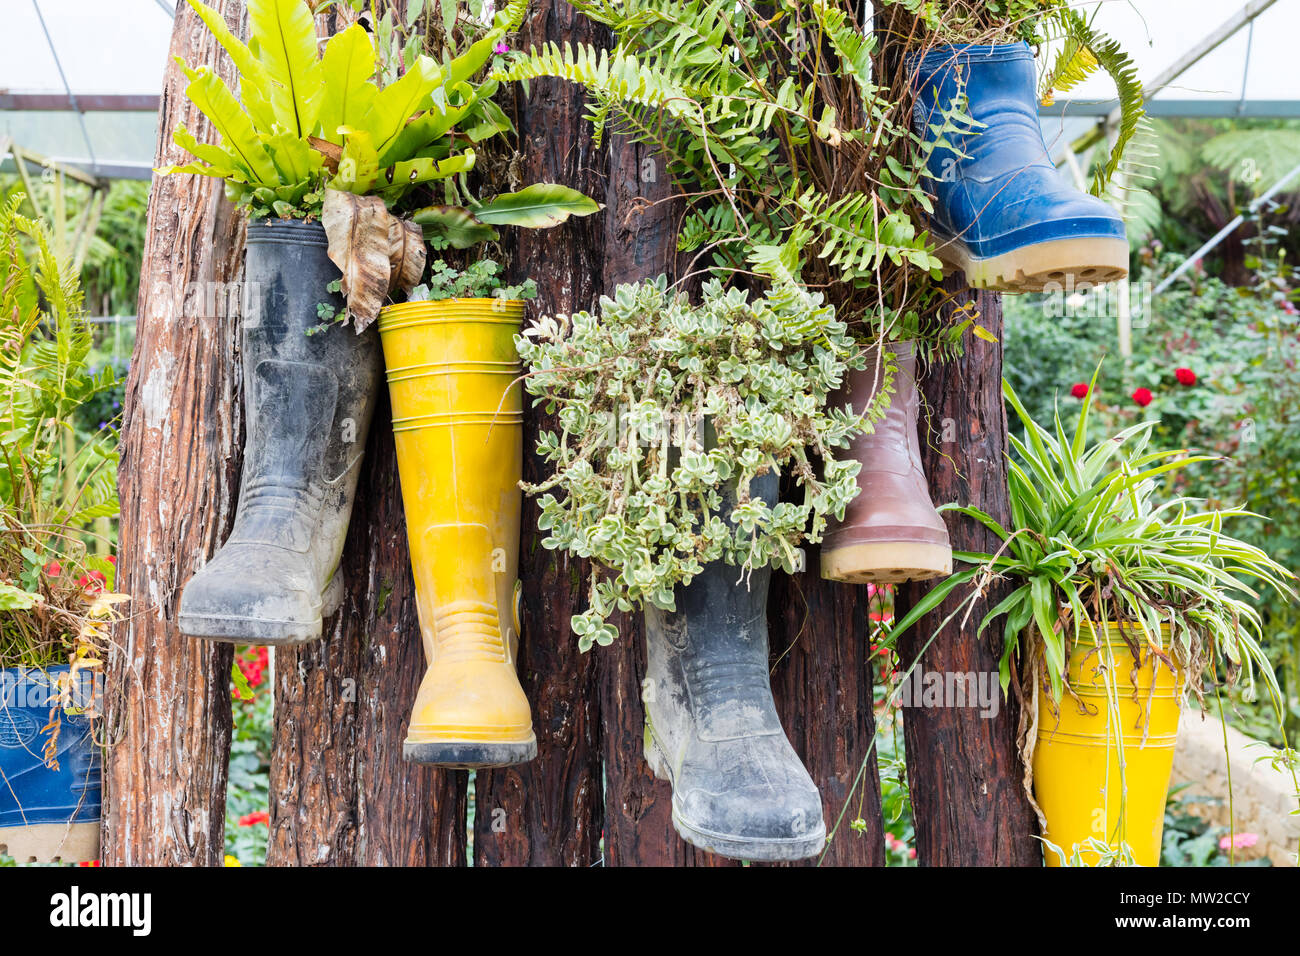 Rubber boots reused with plants hanging on the tree outdoor - Stock Image